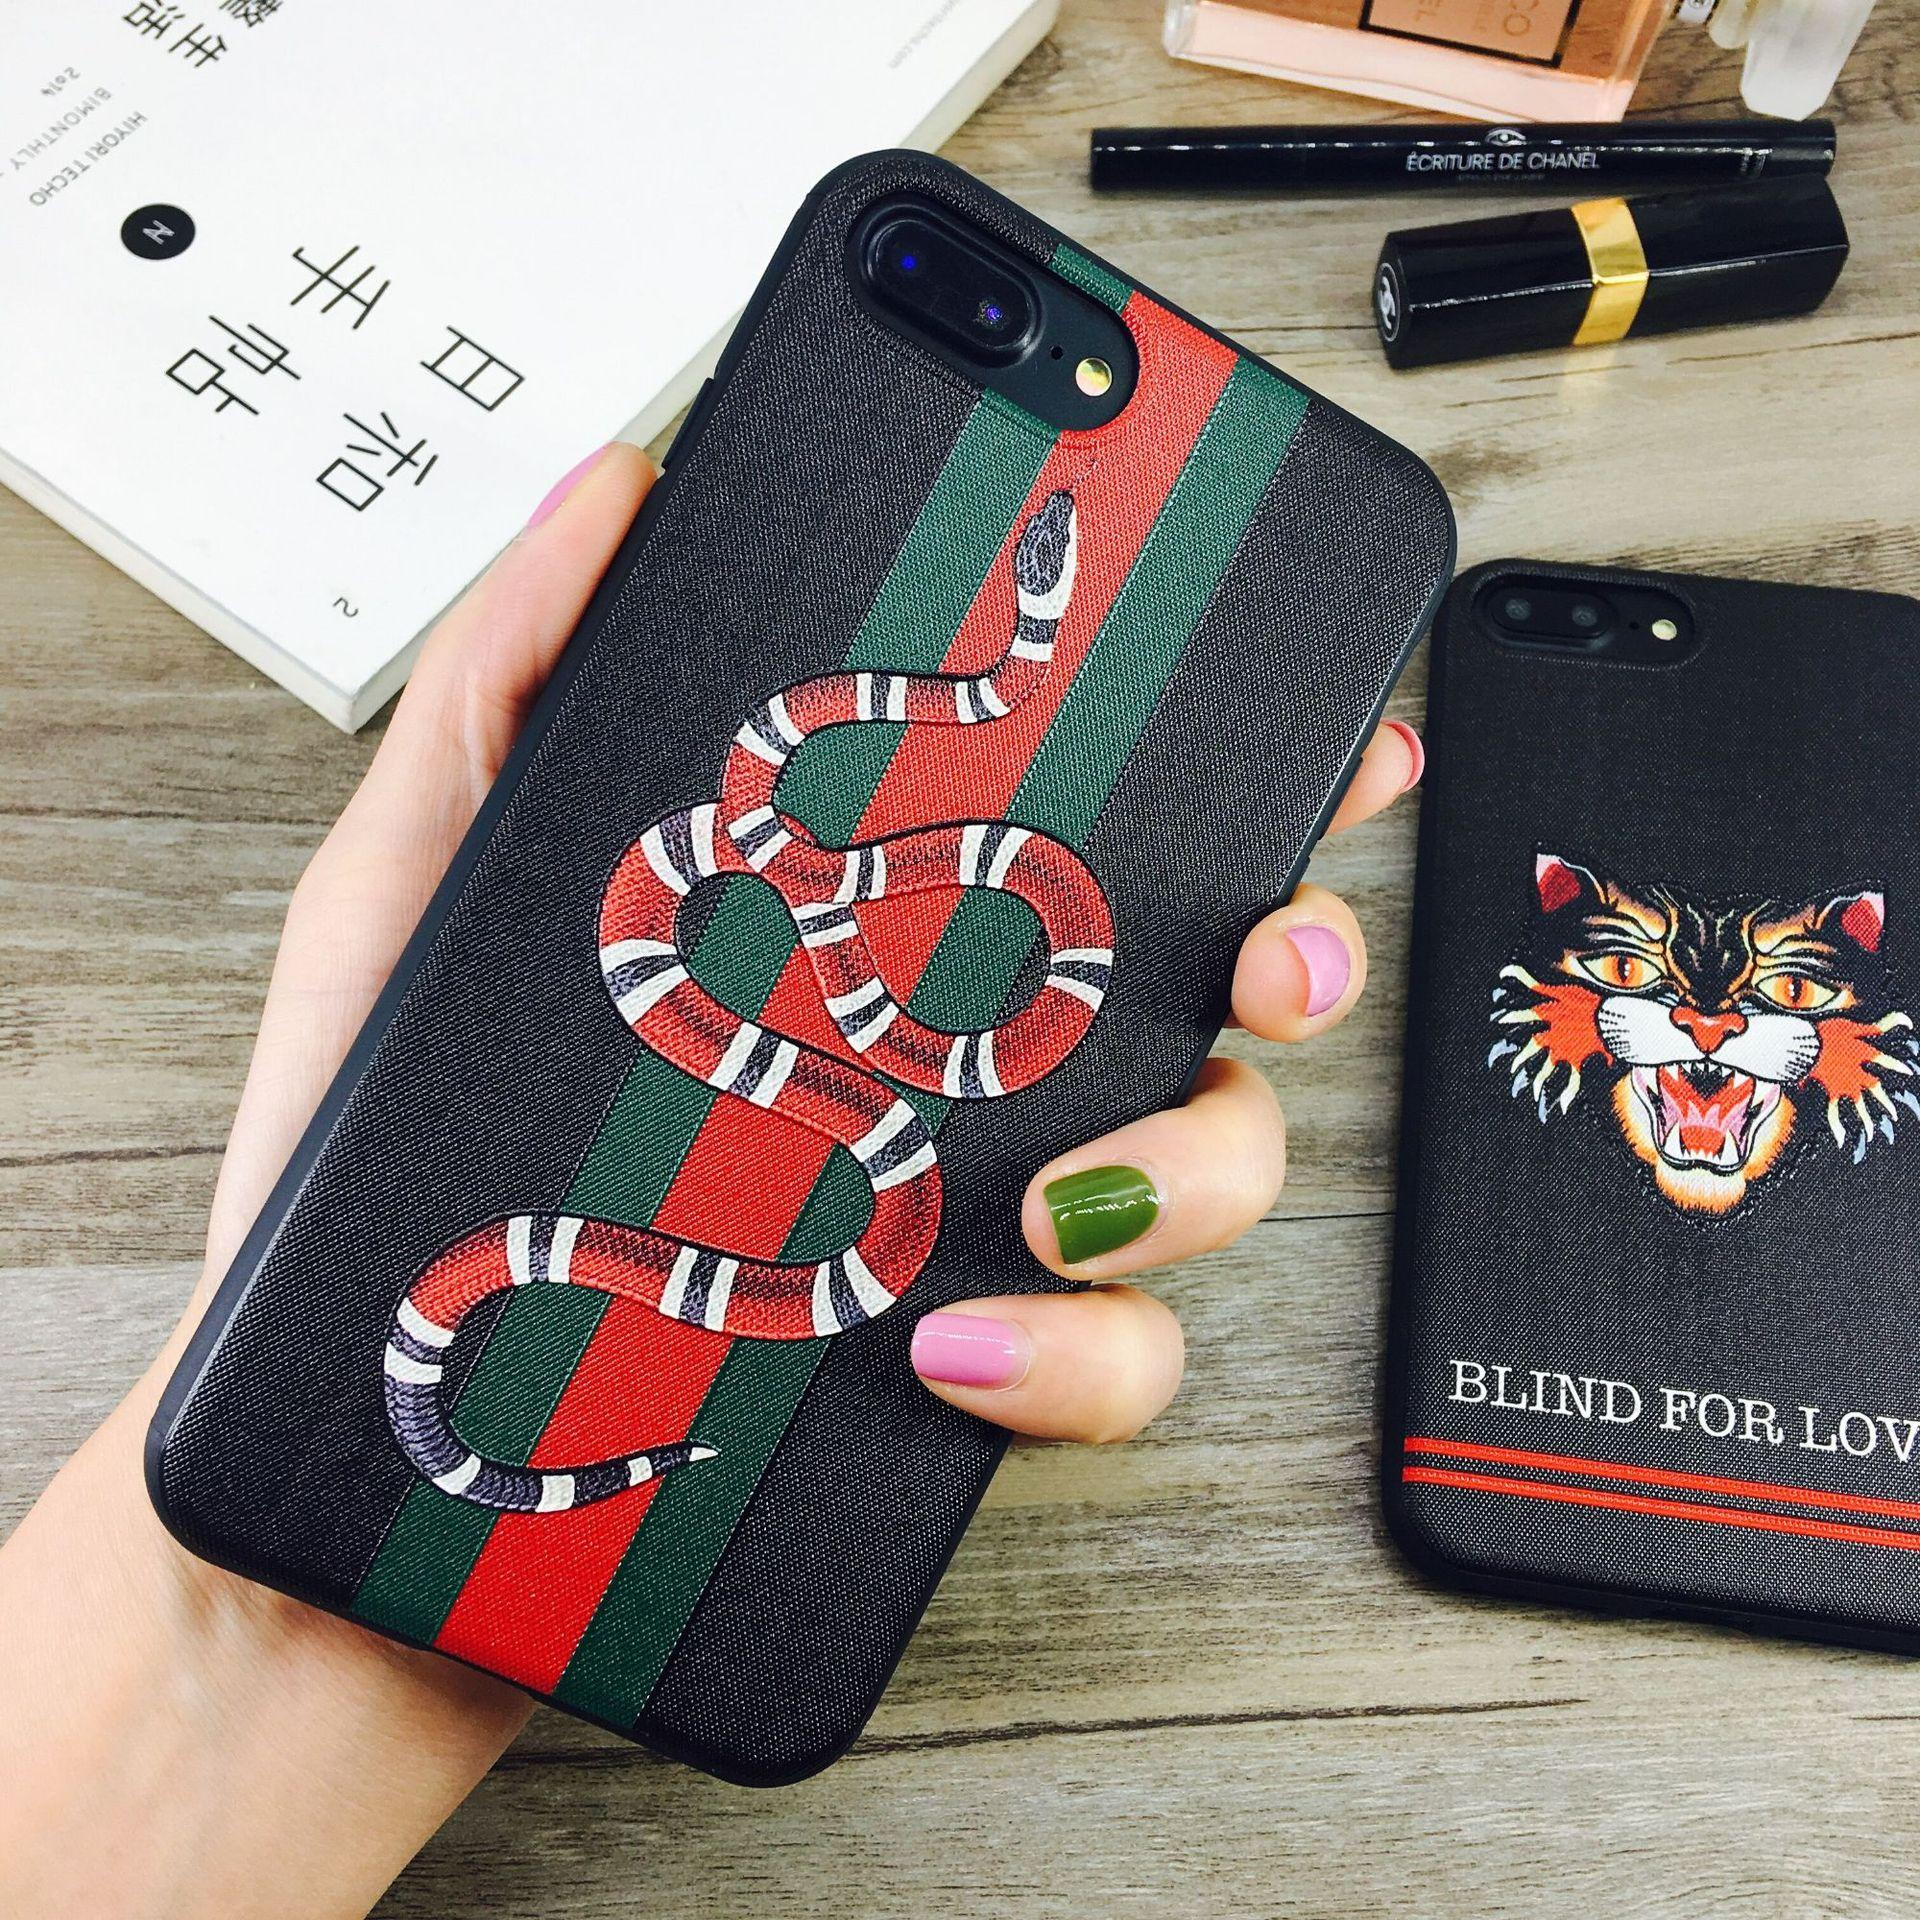 fashion designer phone case for iphone x 6 6s 6plus 6s plus 7 8fashion designer phone case for iphone x 6 6s 6plus 6s plus 7 8 7plus 8plus luxury brand case back cover phone case protection customized cell phone case